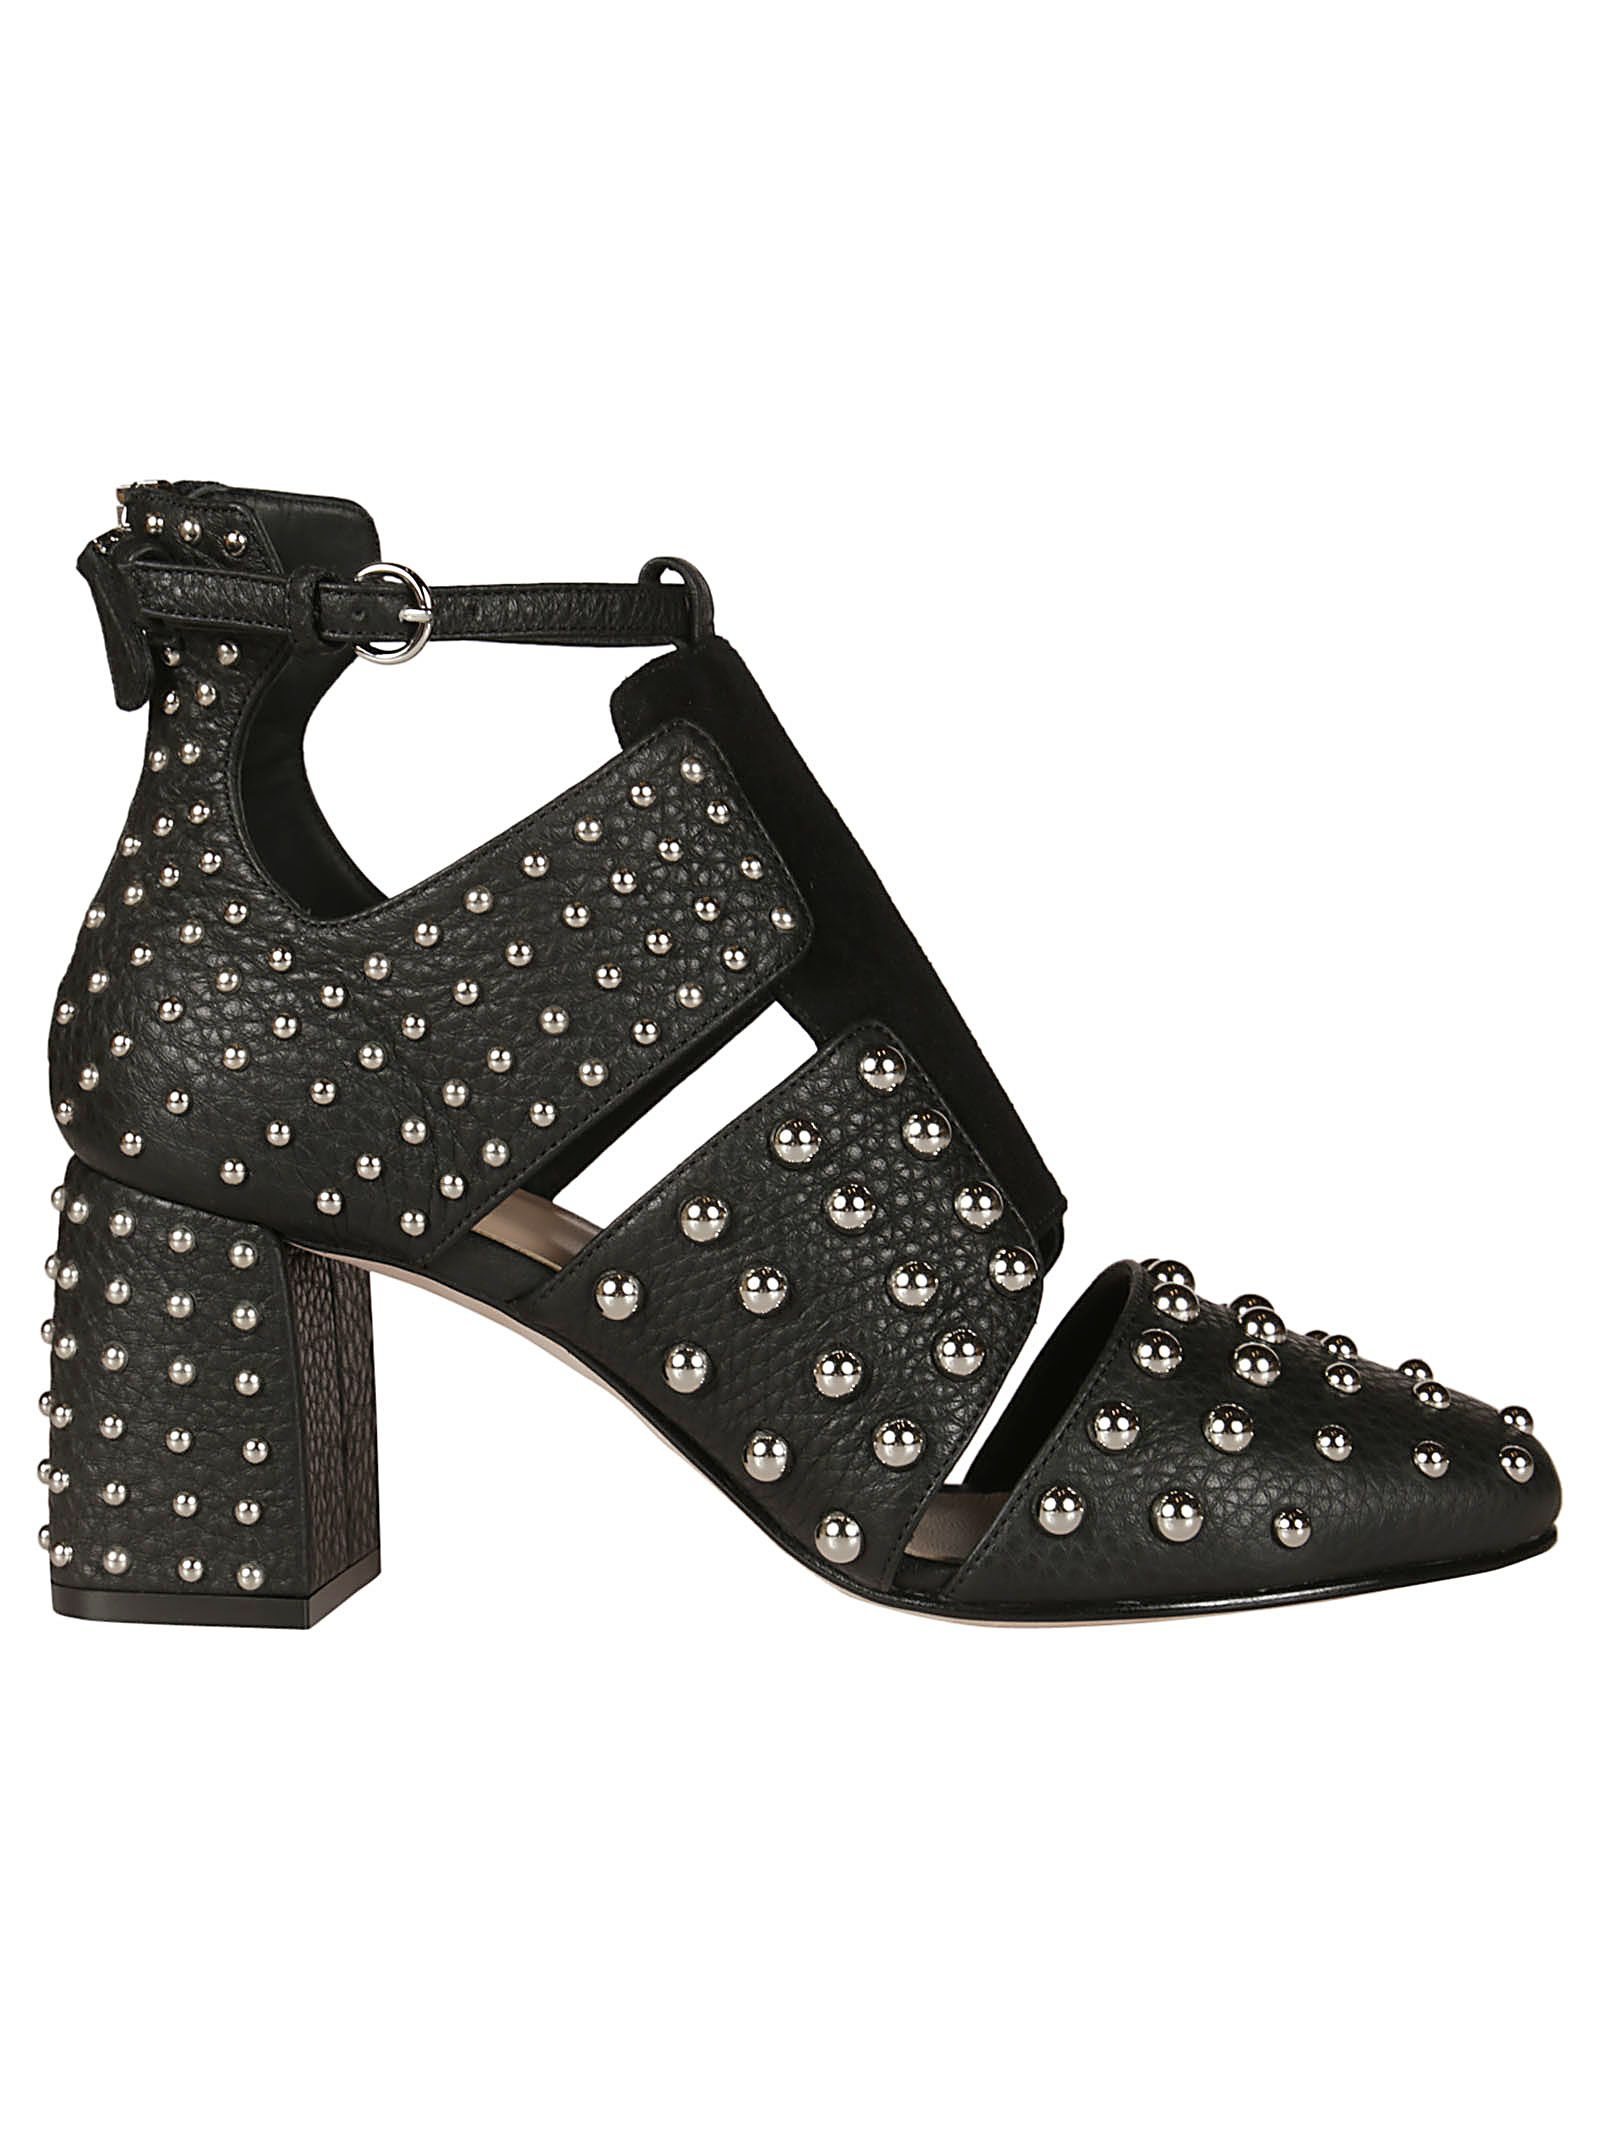 Red Valentino Stud-embellished Ankle Boots